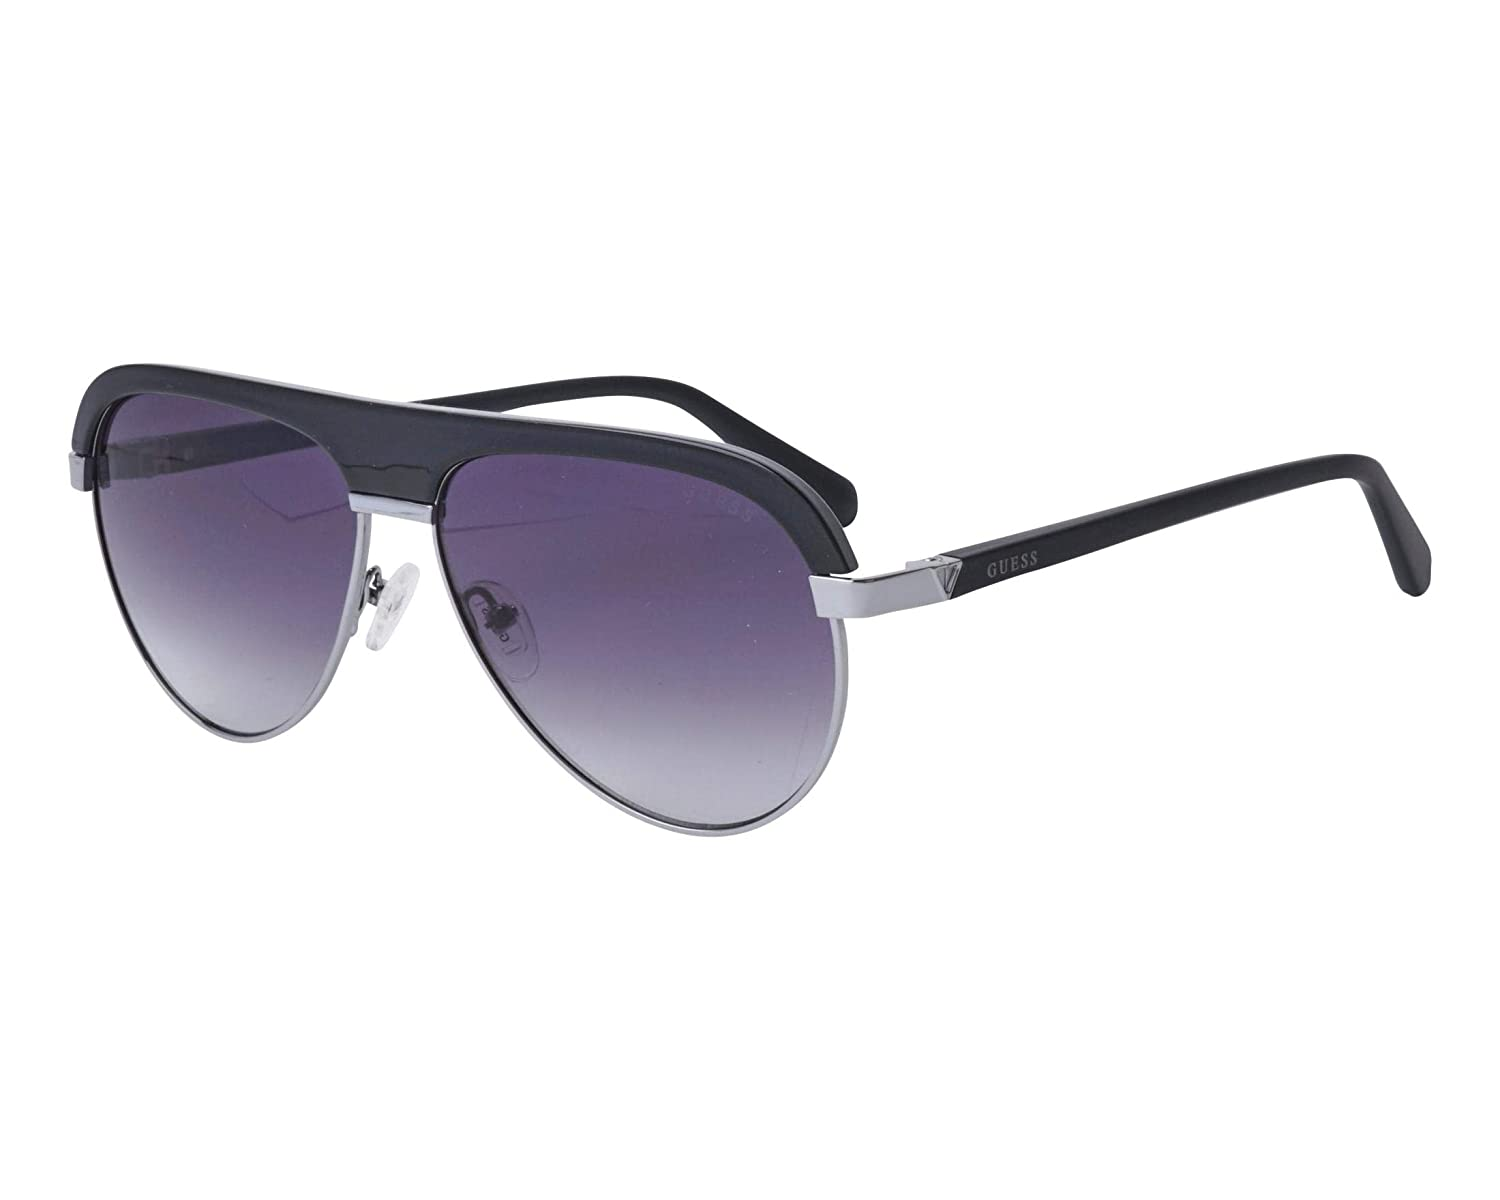 61984eddc1 Guess sunglasses (GU-6937 05B) Shiny Black - Silver - Grey Gradient lenses  at Amazon Men s Clothing store